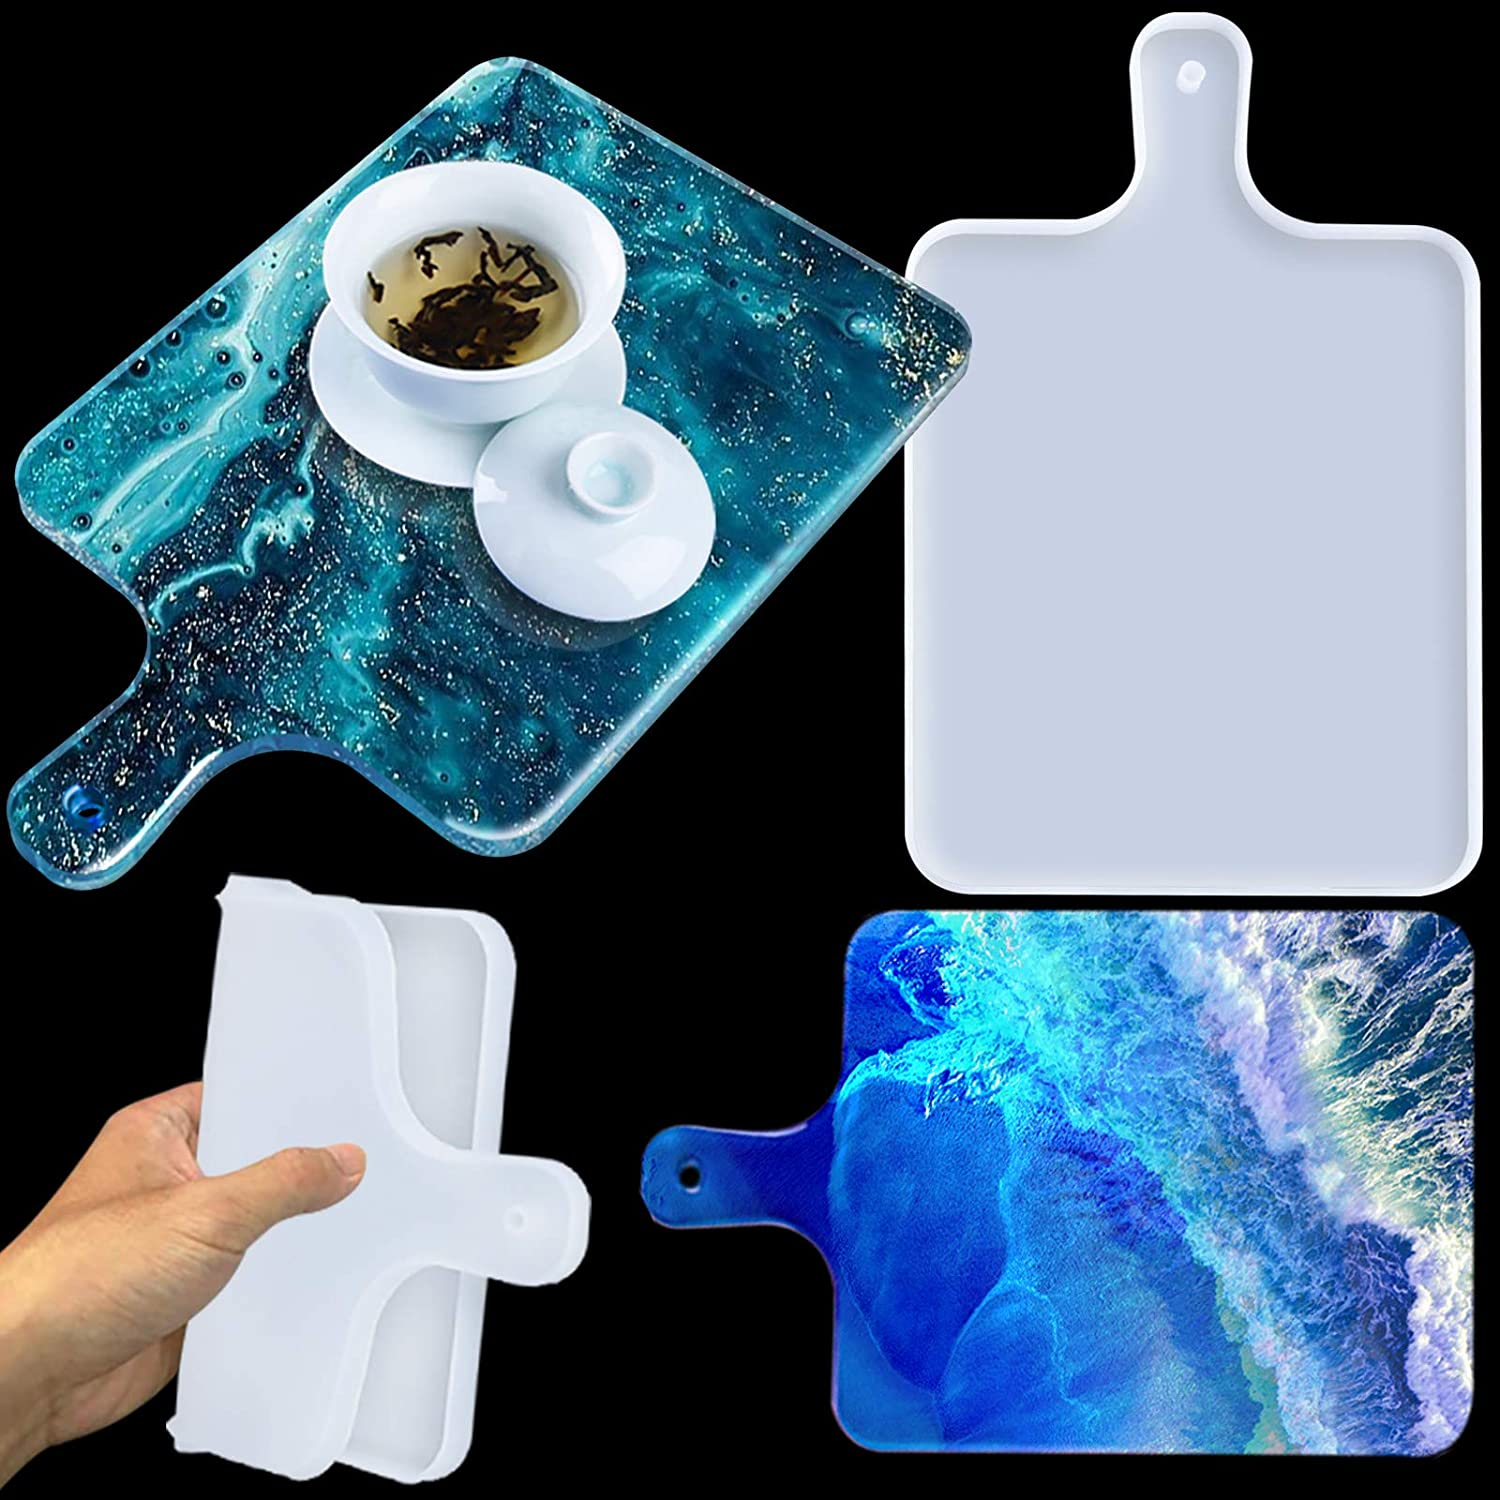 Large Silicone Resin Long Beach Mall Mold Tray for Molds free D Casting Epoxy